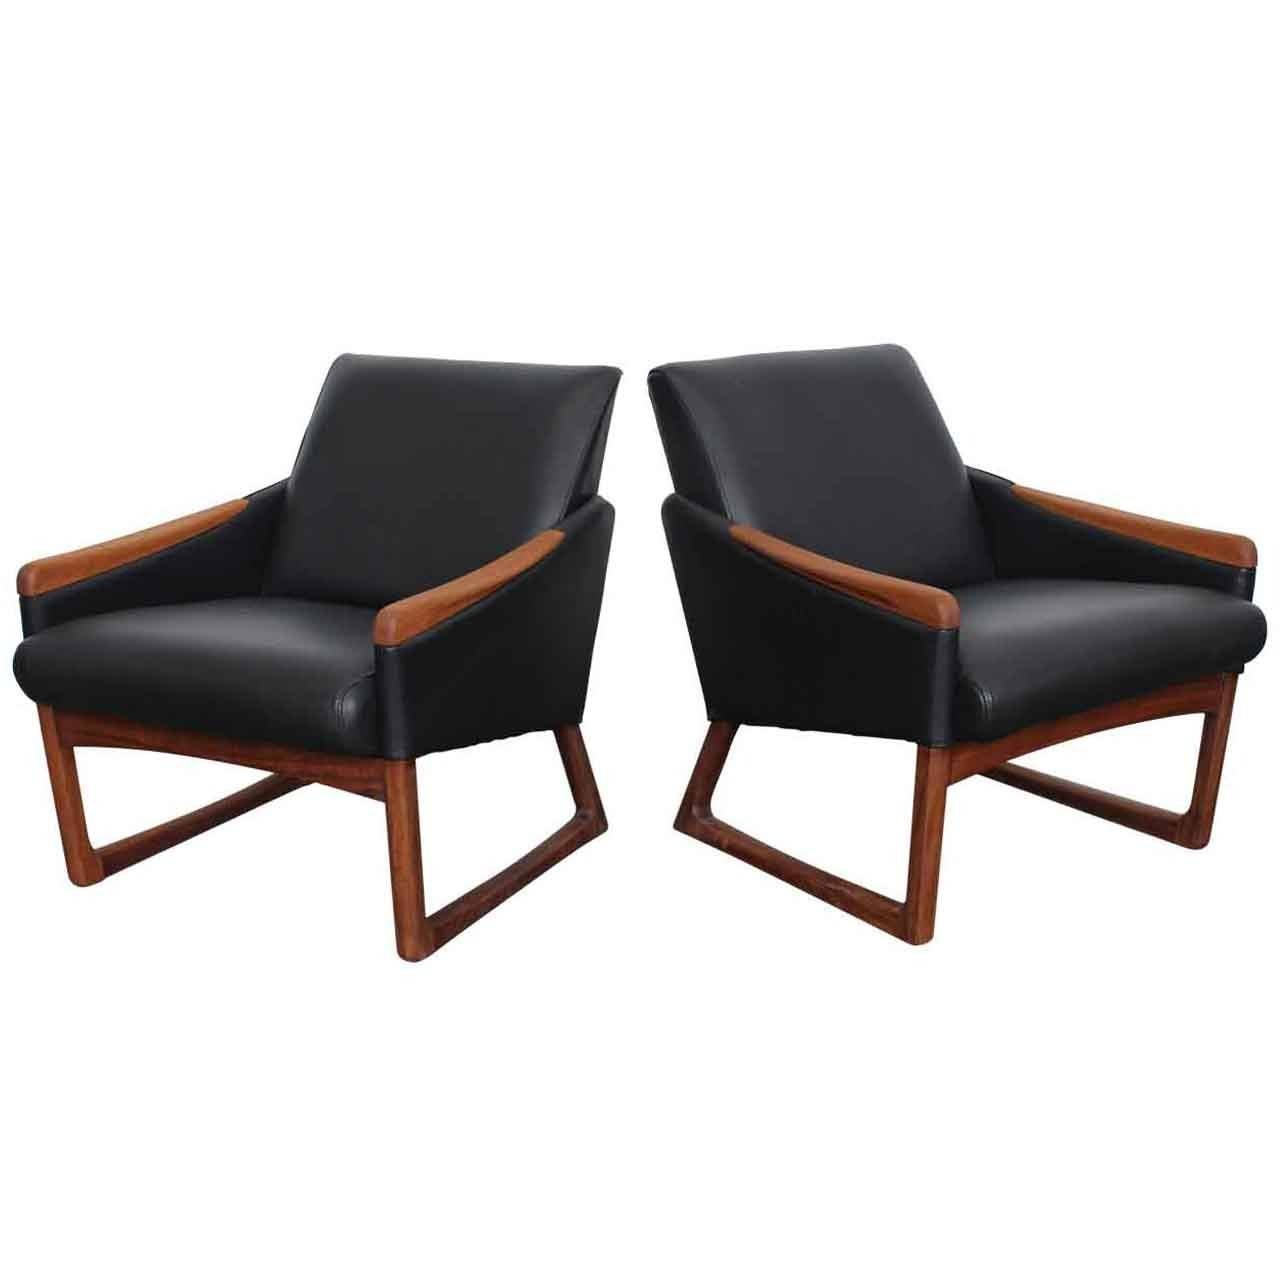 Modern Club Chairs Mid Century Modern Leather Lounge Chairs At 1stdibs